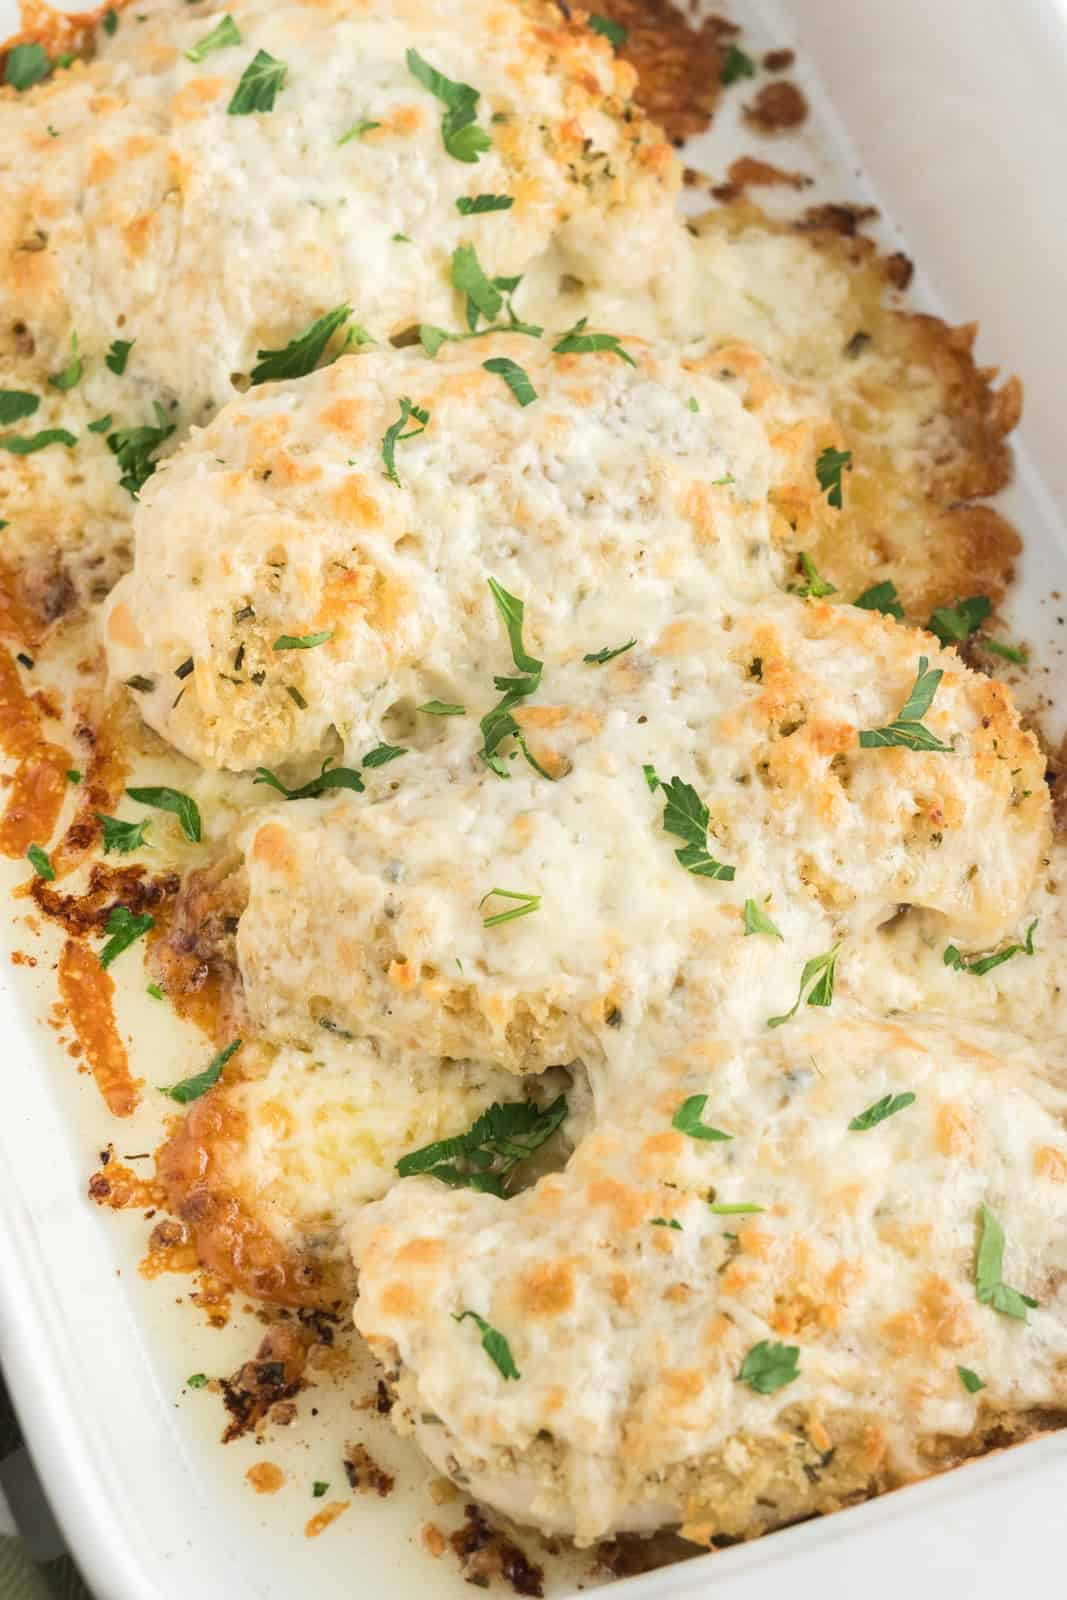 Finished Cheesy Chicken in baking dish topped with parsley